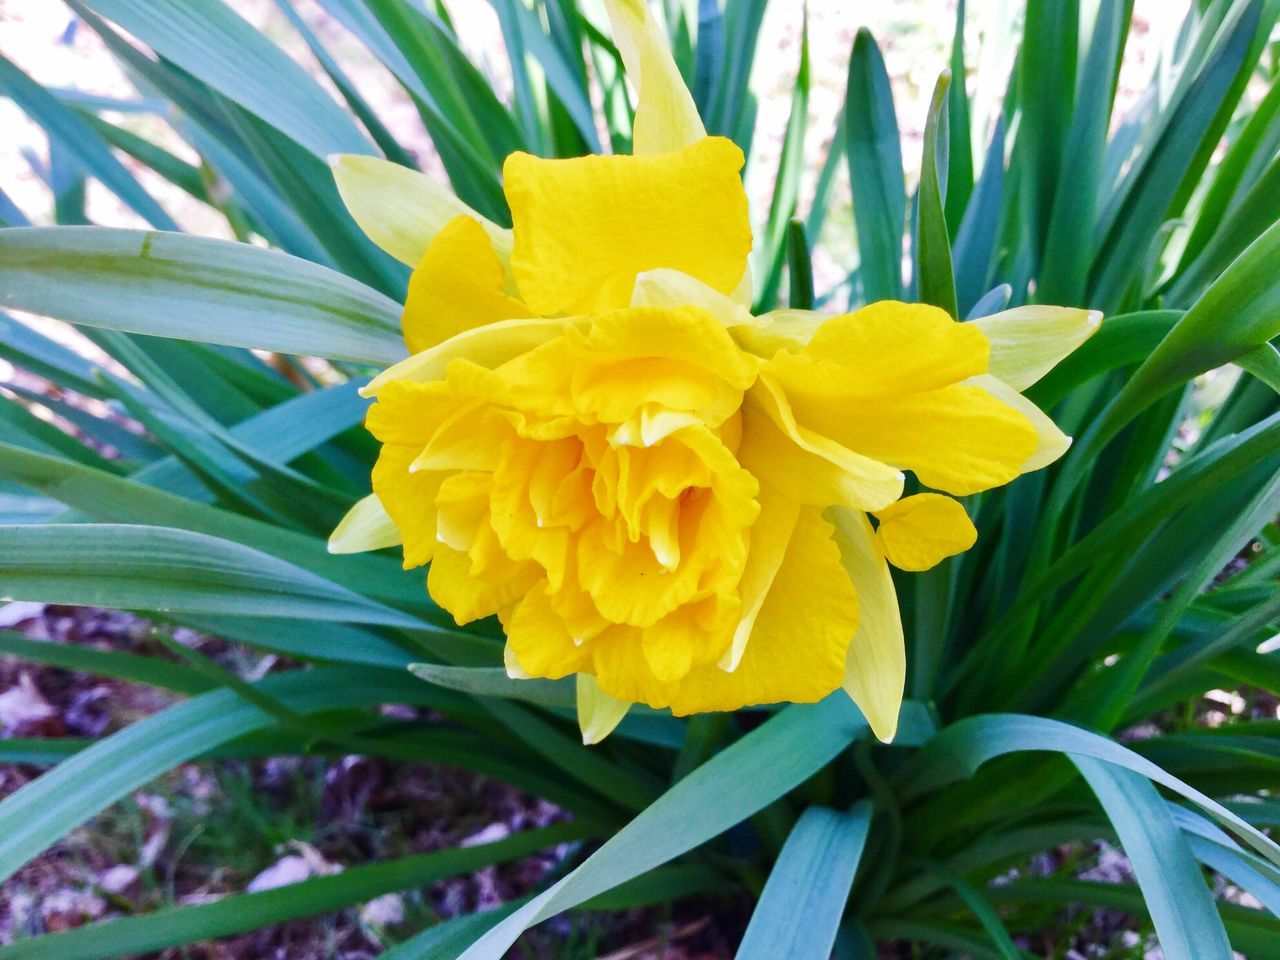 Nature Flower Yellow Growth Beauty In Nature Plant Blooming Close-up Day Outdoors